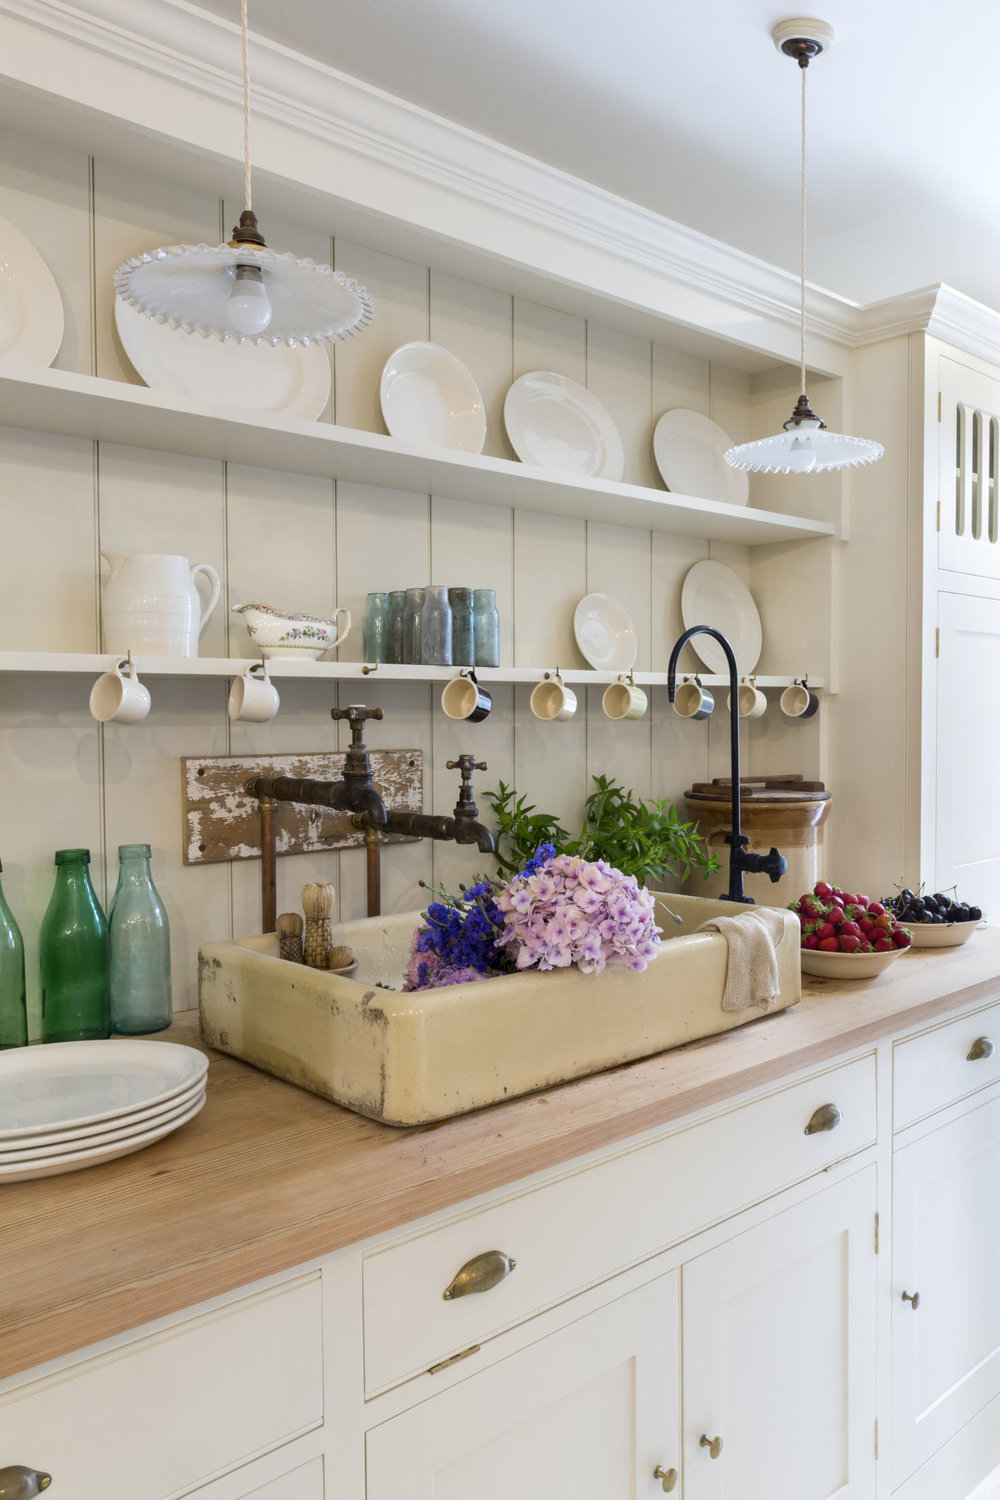 plain-english-kitchen-at-howe-london-3a-1466x2199.jpg